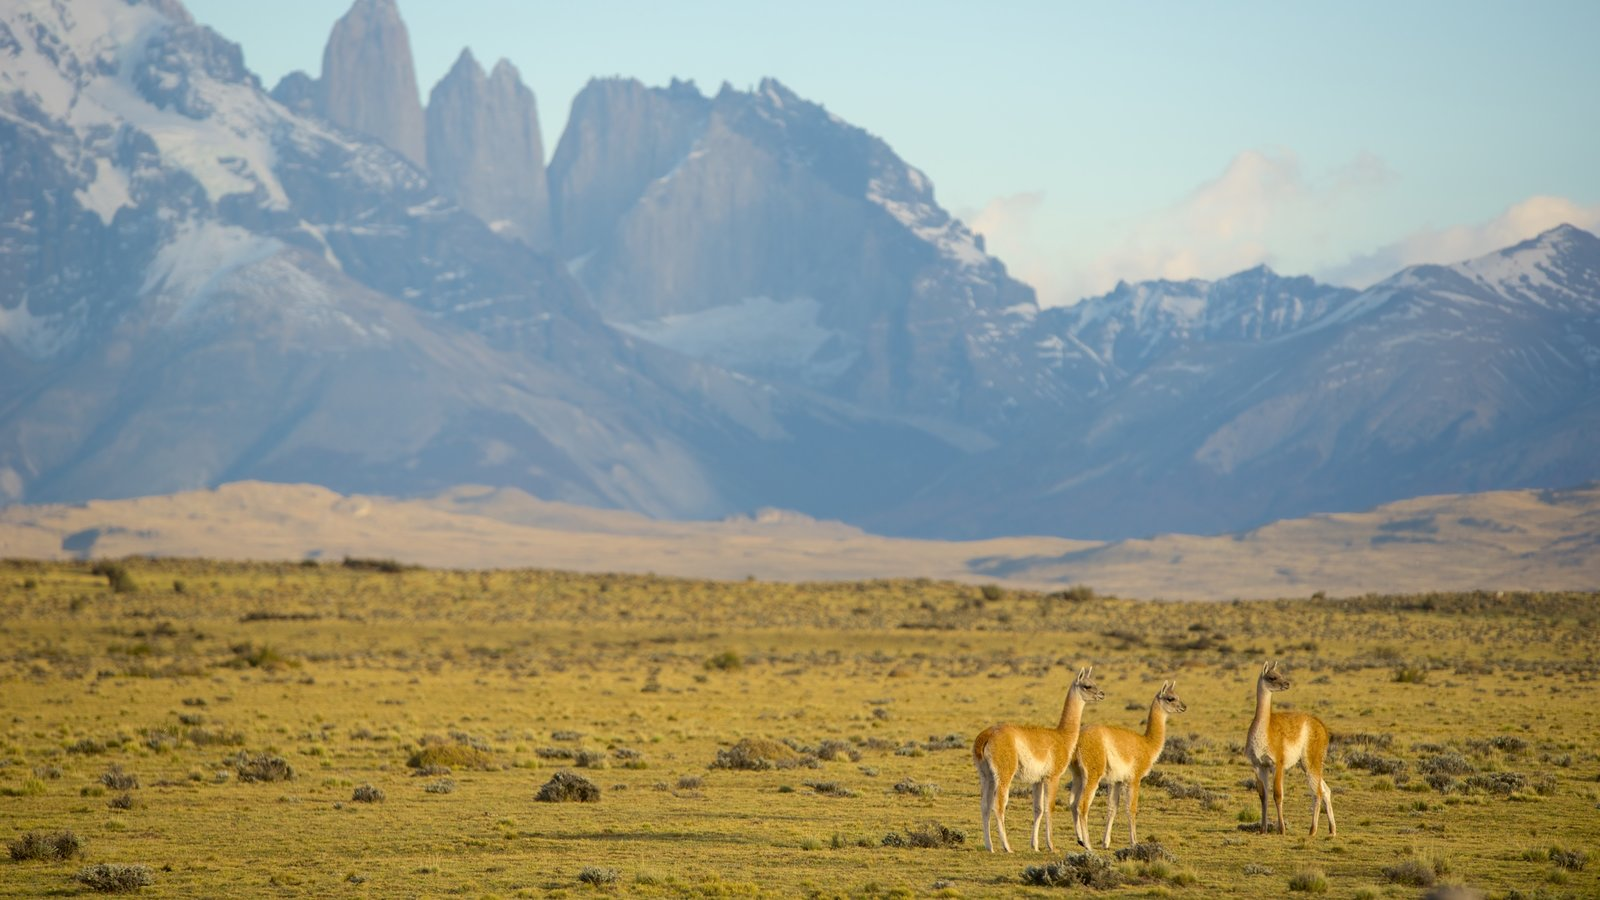 Torres del Paine National Park showing mountains, animals and tranquil scenes